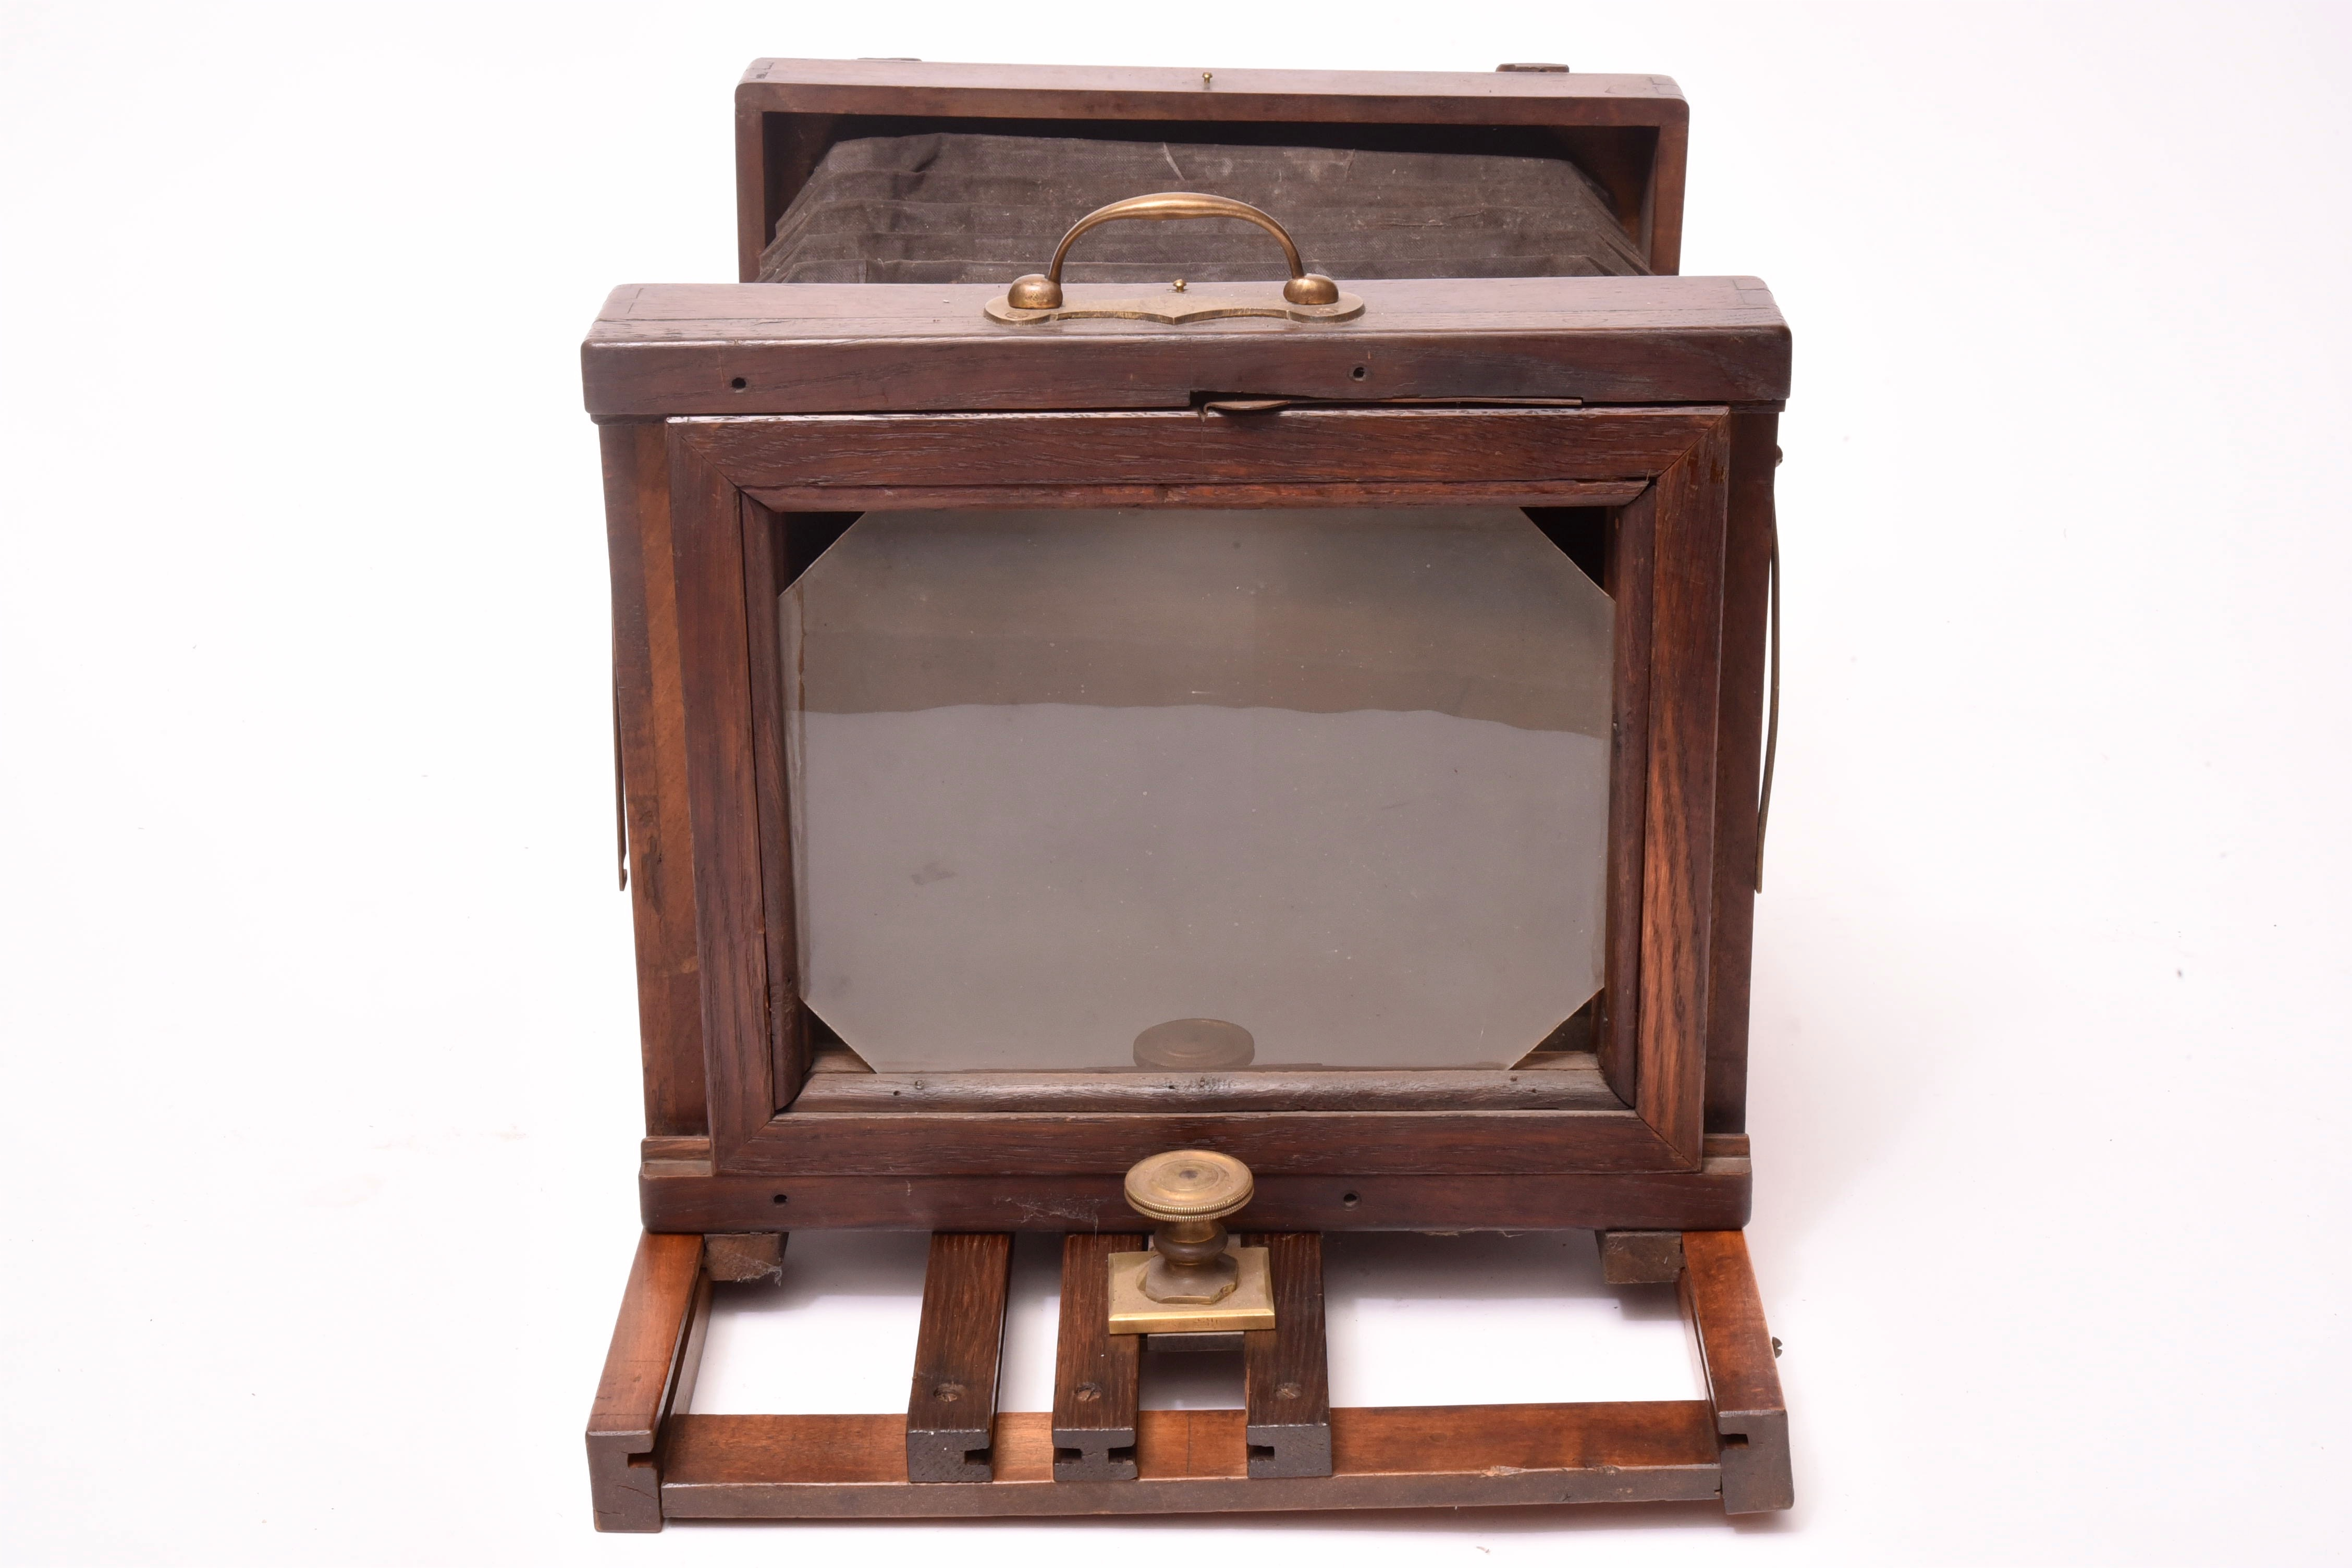 A Boutrais Chambre Photographique Poque Collodion Antiq Photo